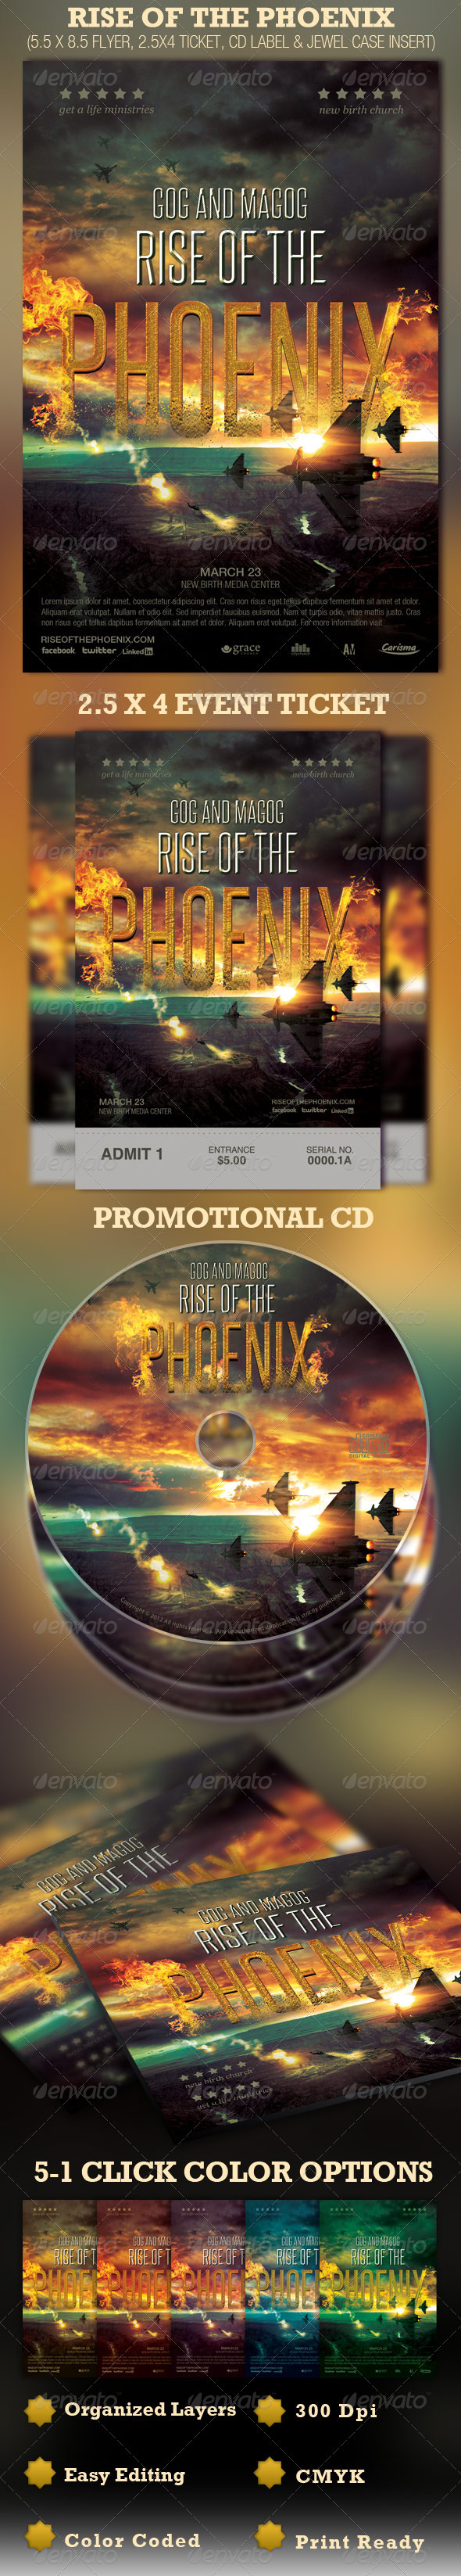 GraphicRiver Rise of the Phoenix Flyer Ticket and CD Template 1708448